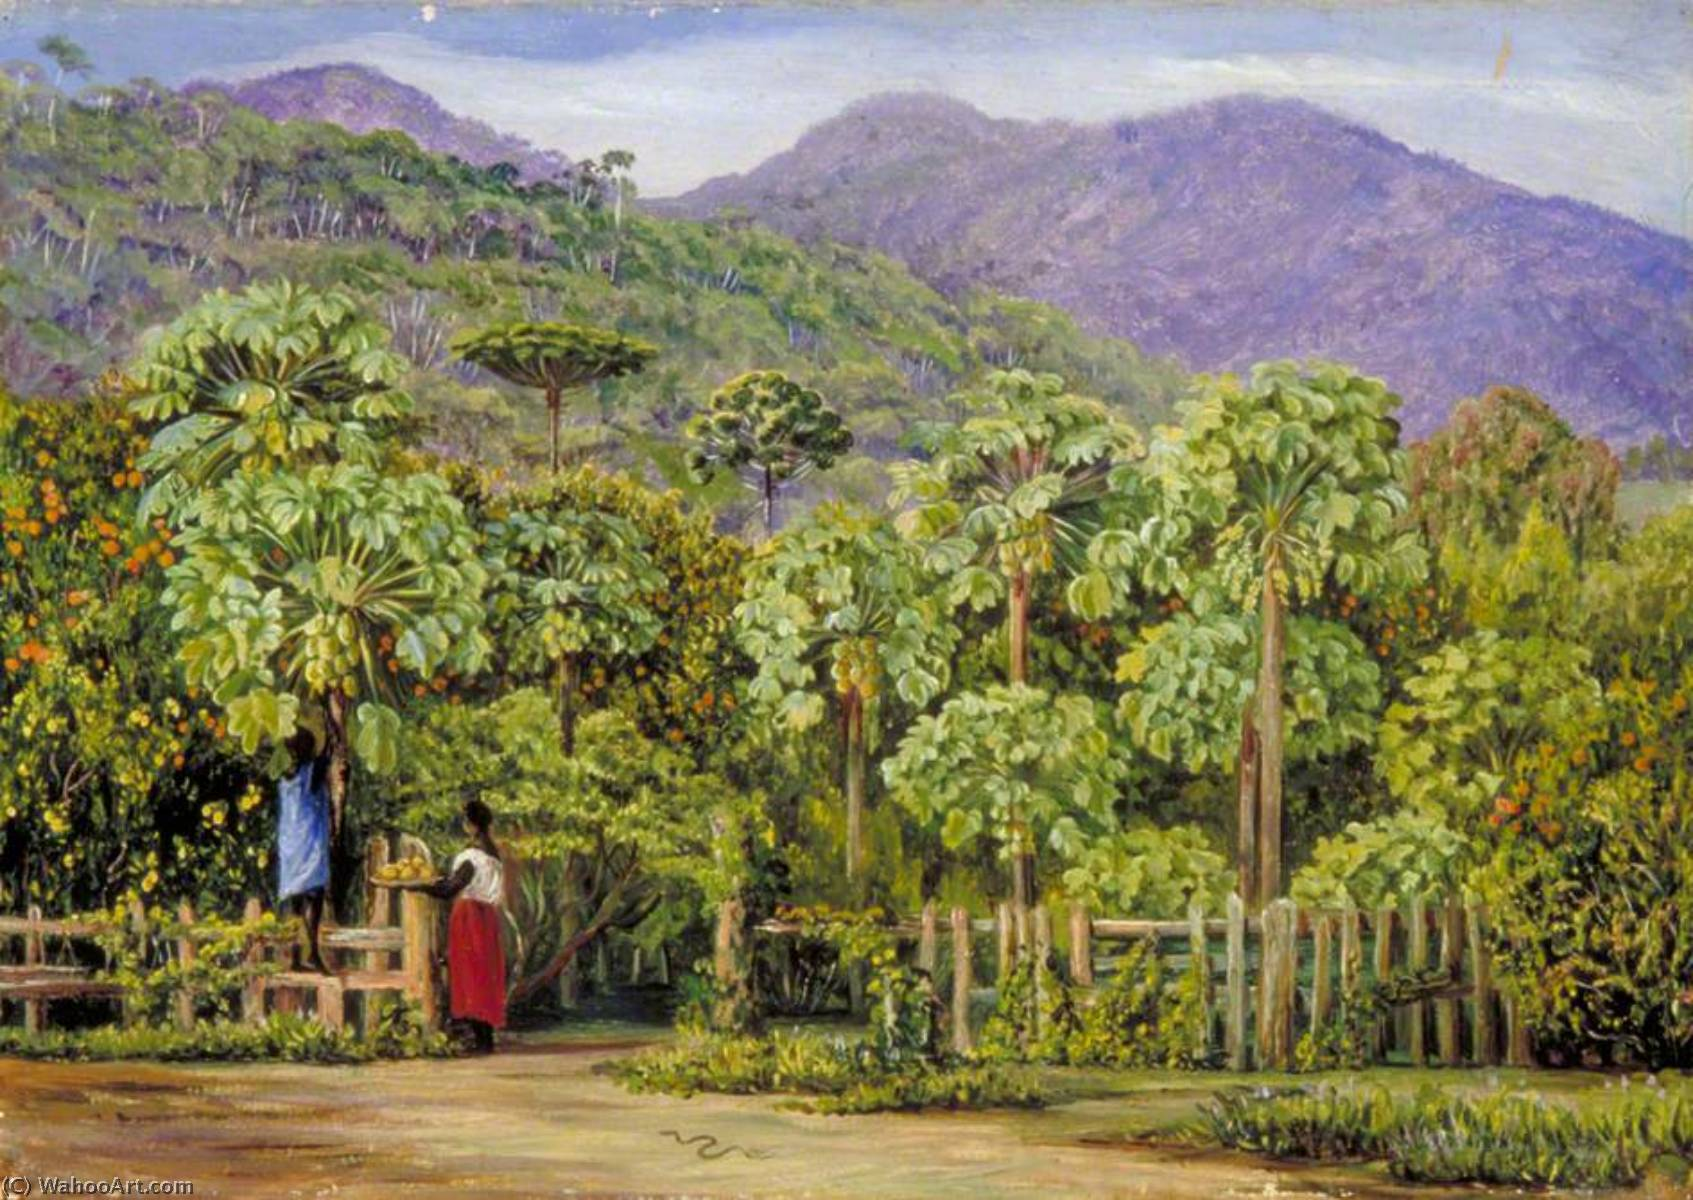 Pawpaw Trees at Gongo, Brazil, 1873 by Marianne North (1830